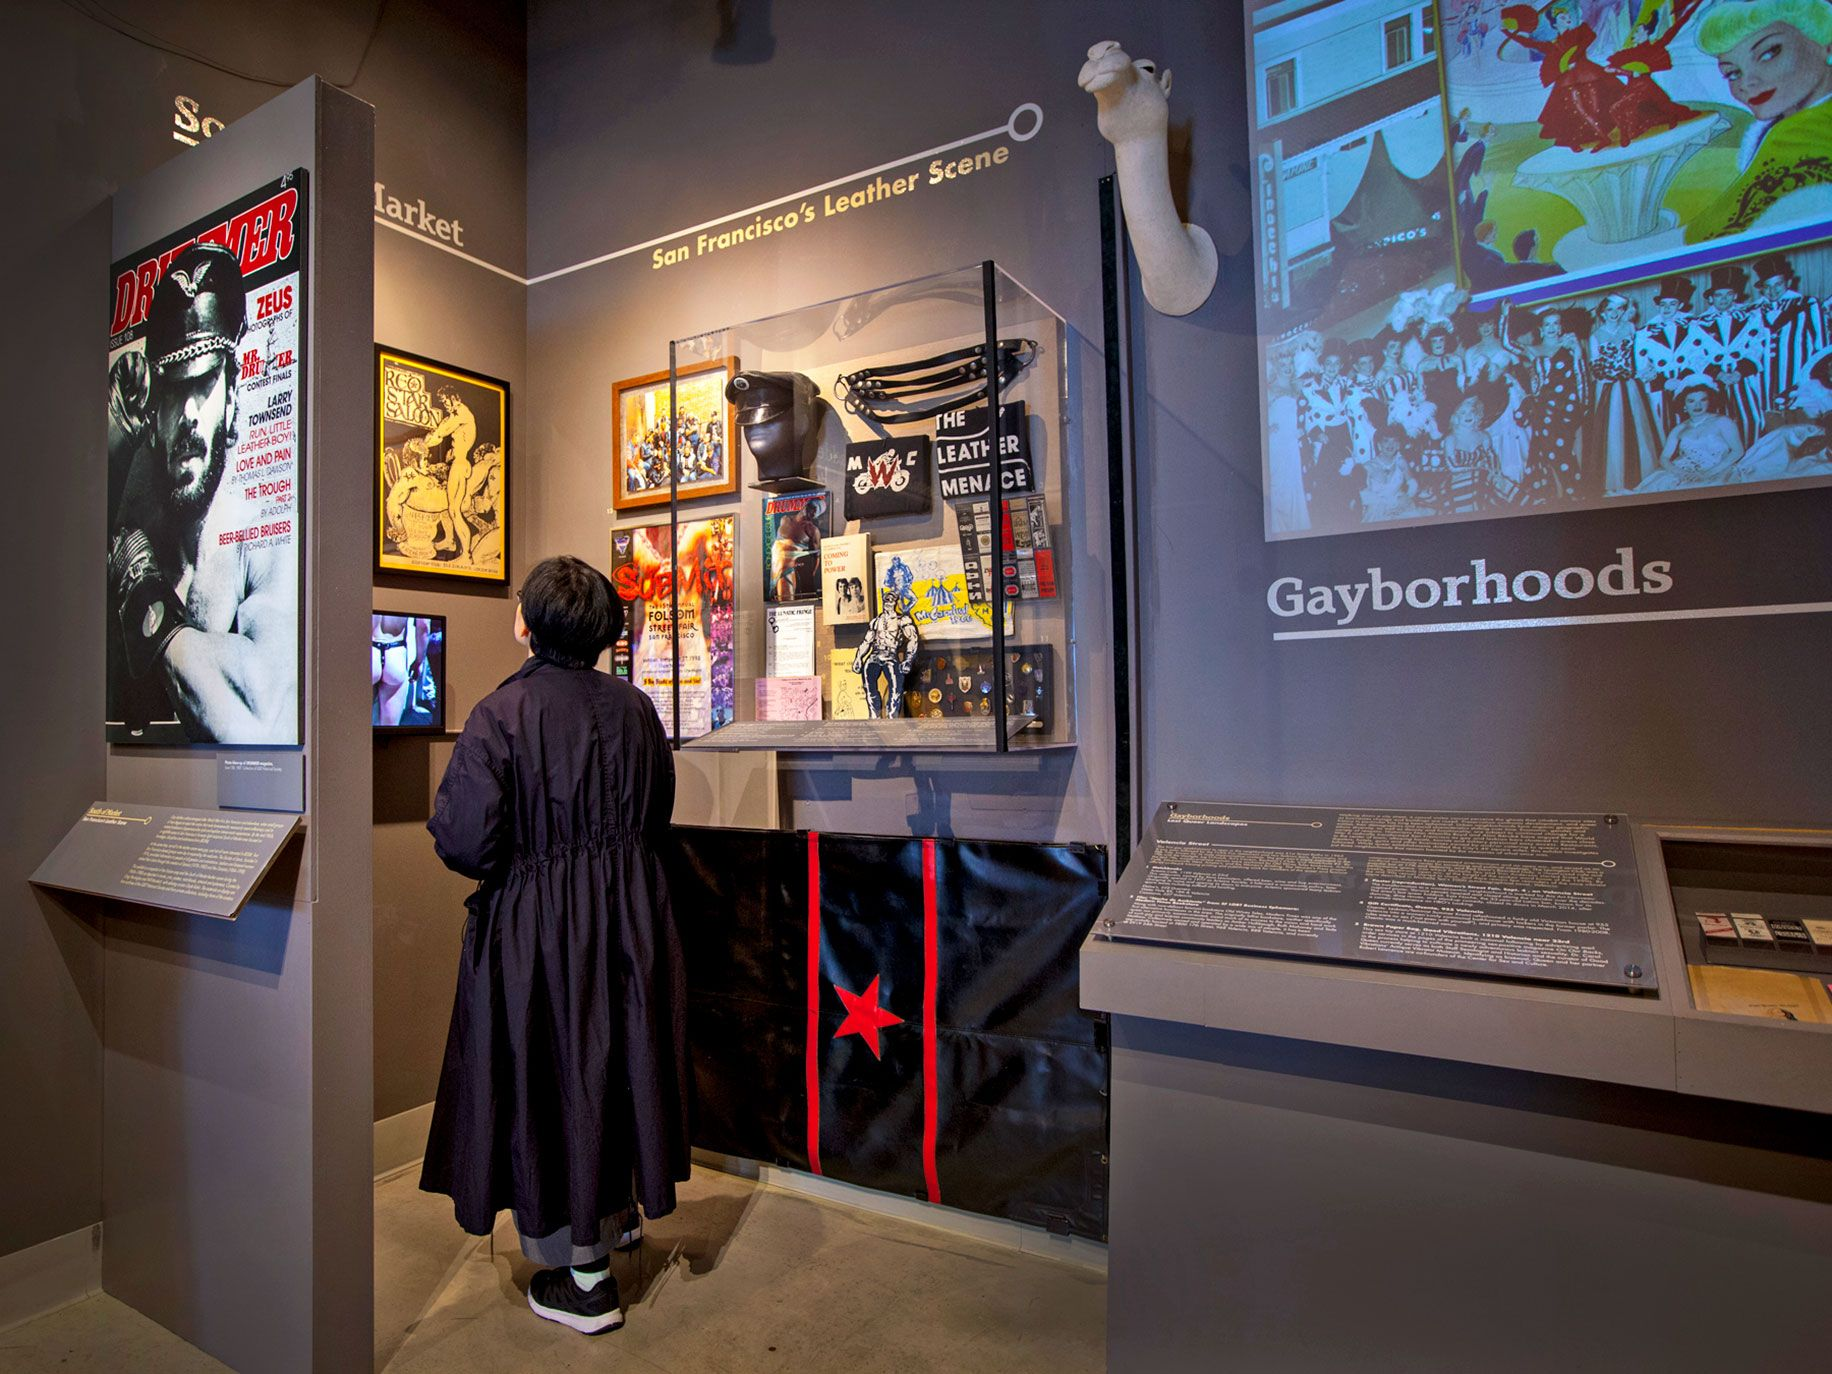 A visitor looks at an exhibit at the GLBT History Museum in San Francisco.